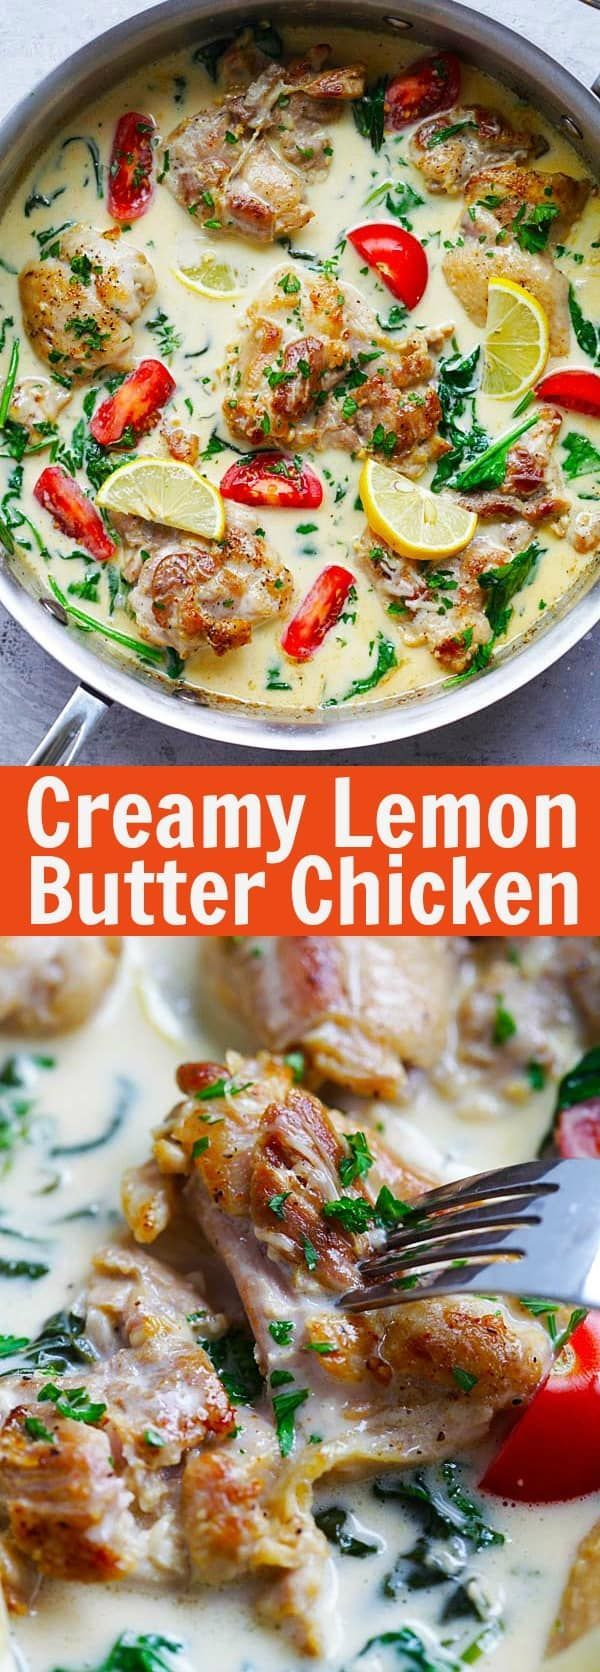 Lemon Butter Chicken - juicy and moist pan-fried chicken in a super creamy, lemony and cheesy white sauce, with spinach and tomatoes | rasamalaysia.com #foodrecipe